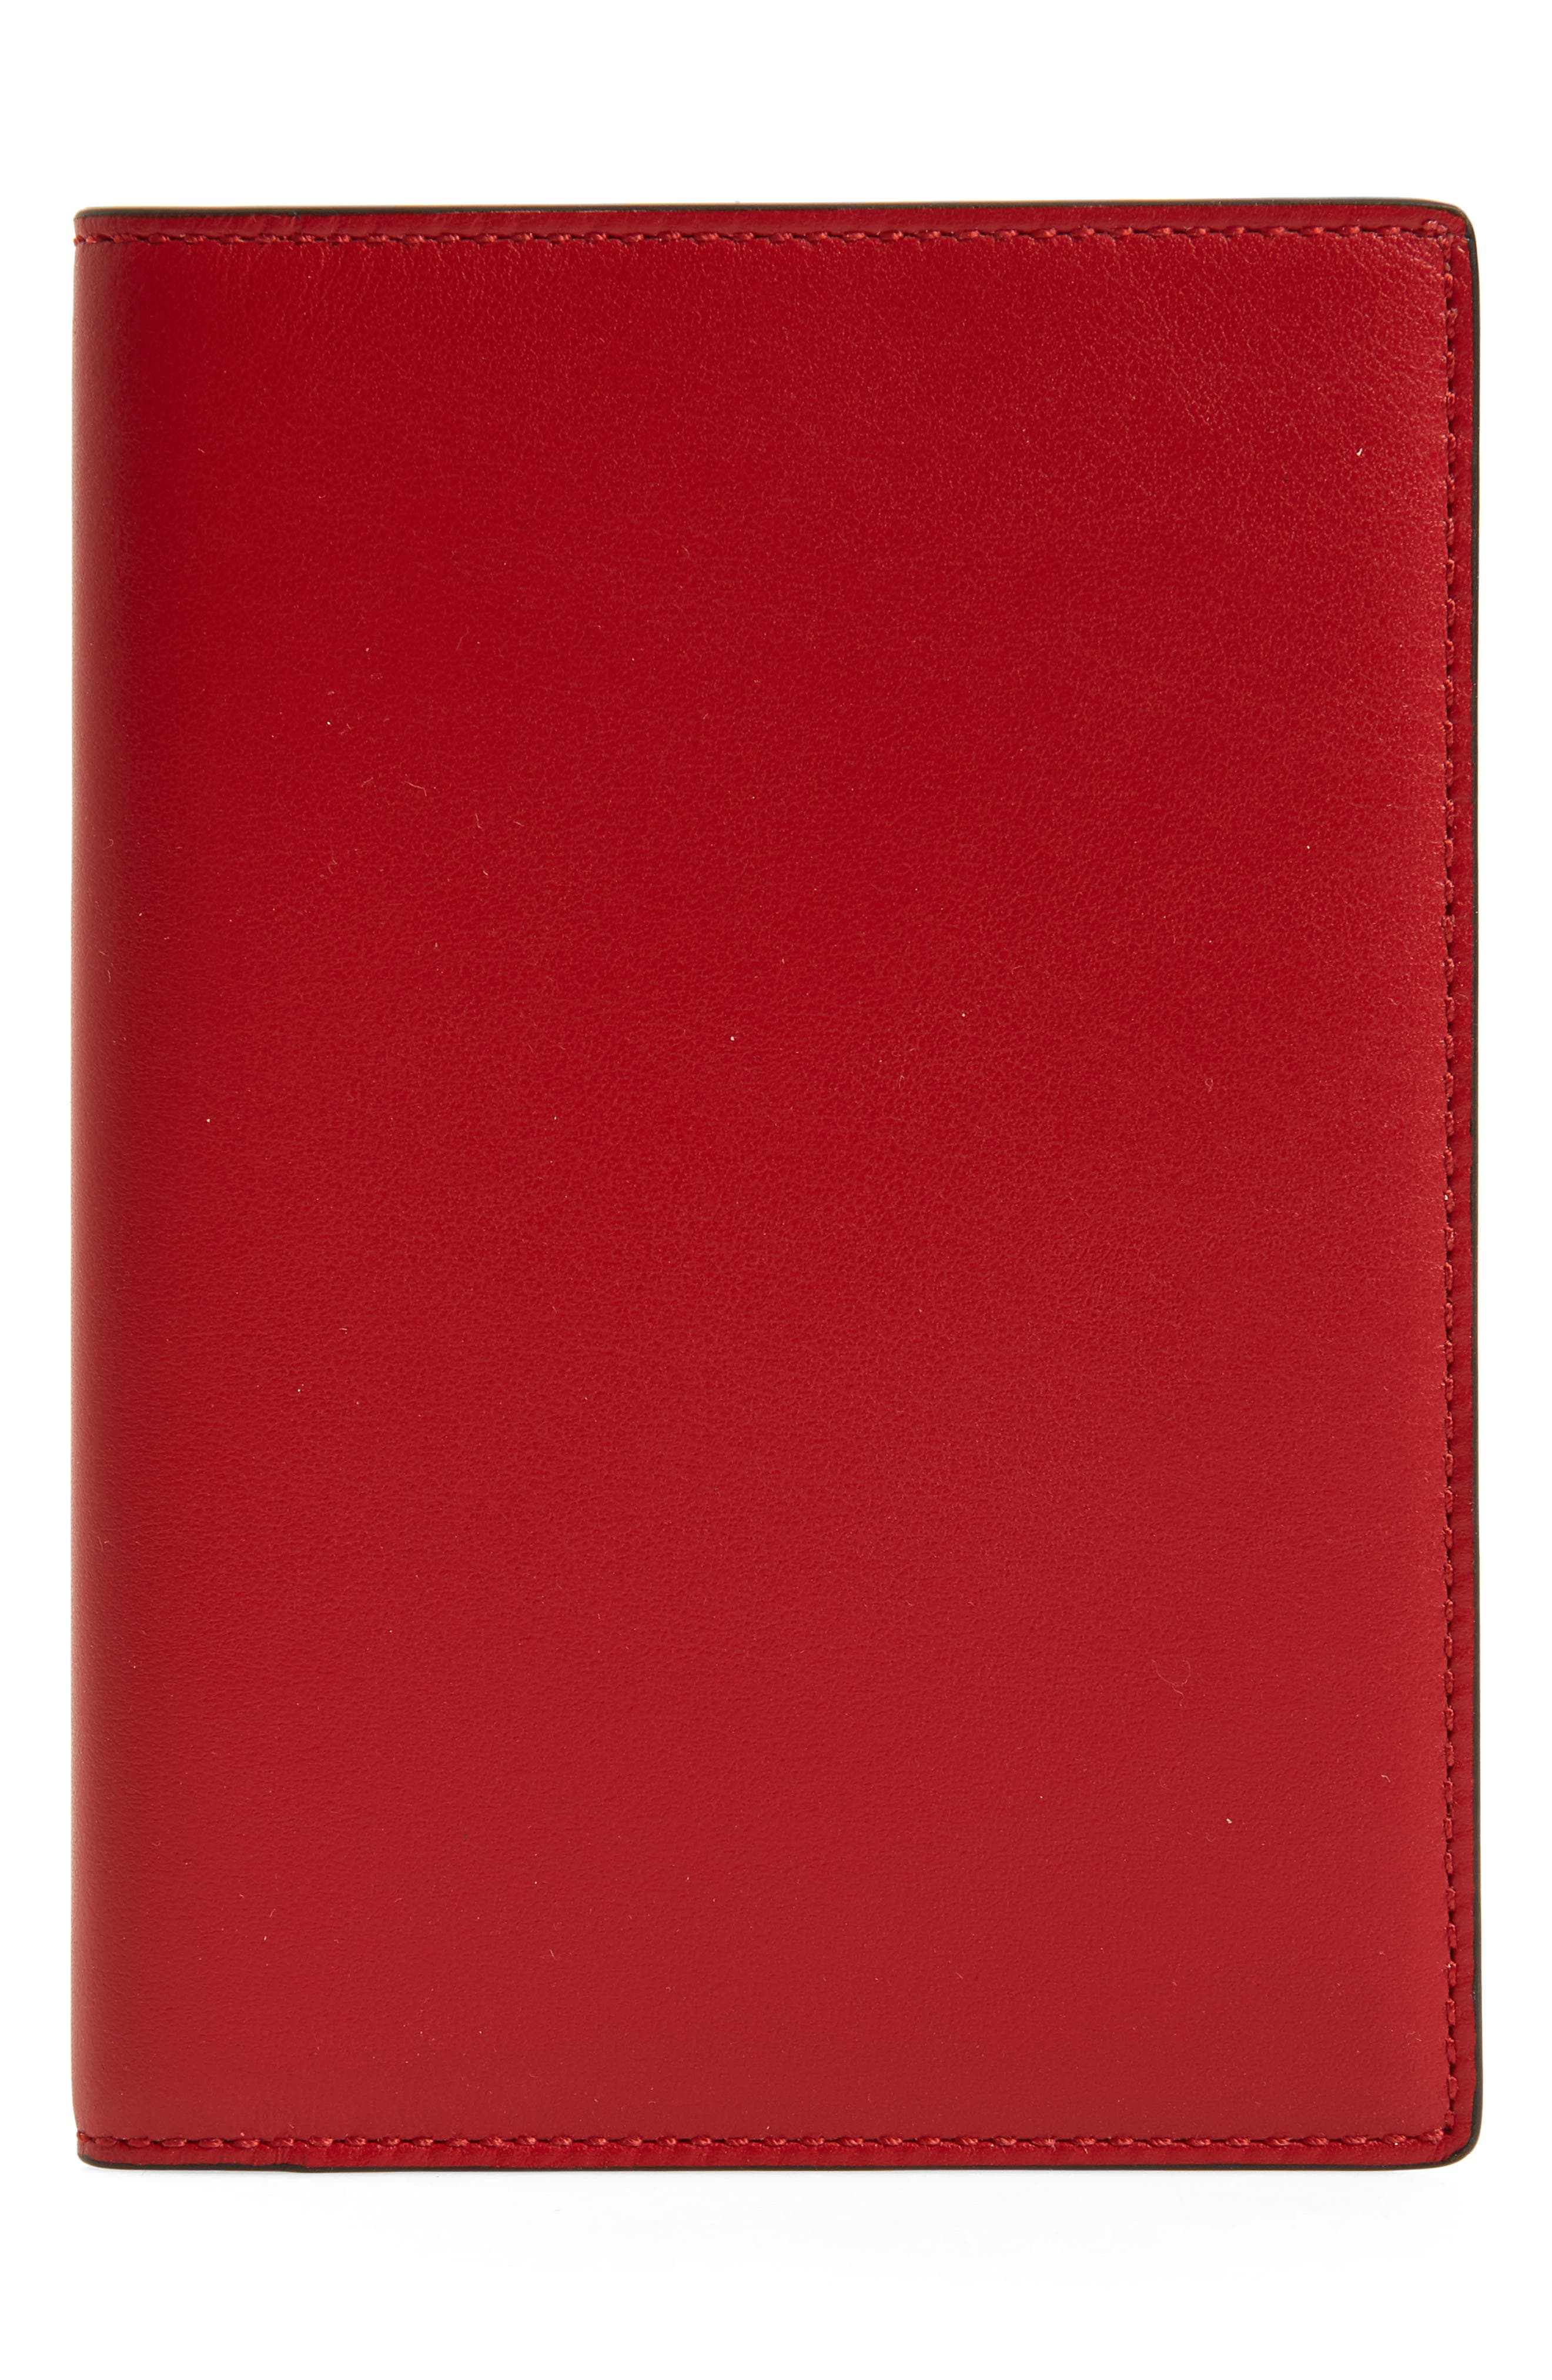 Smythson Hero Leather Passport Cover